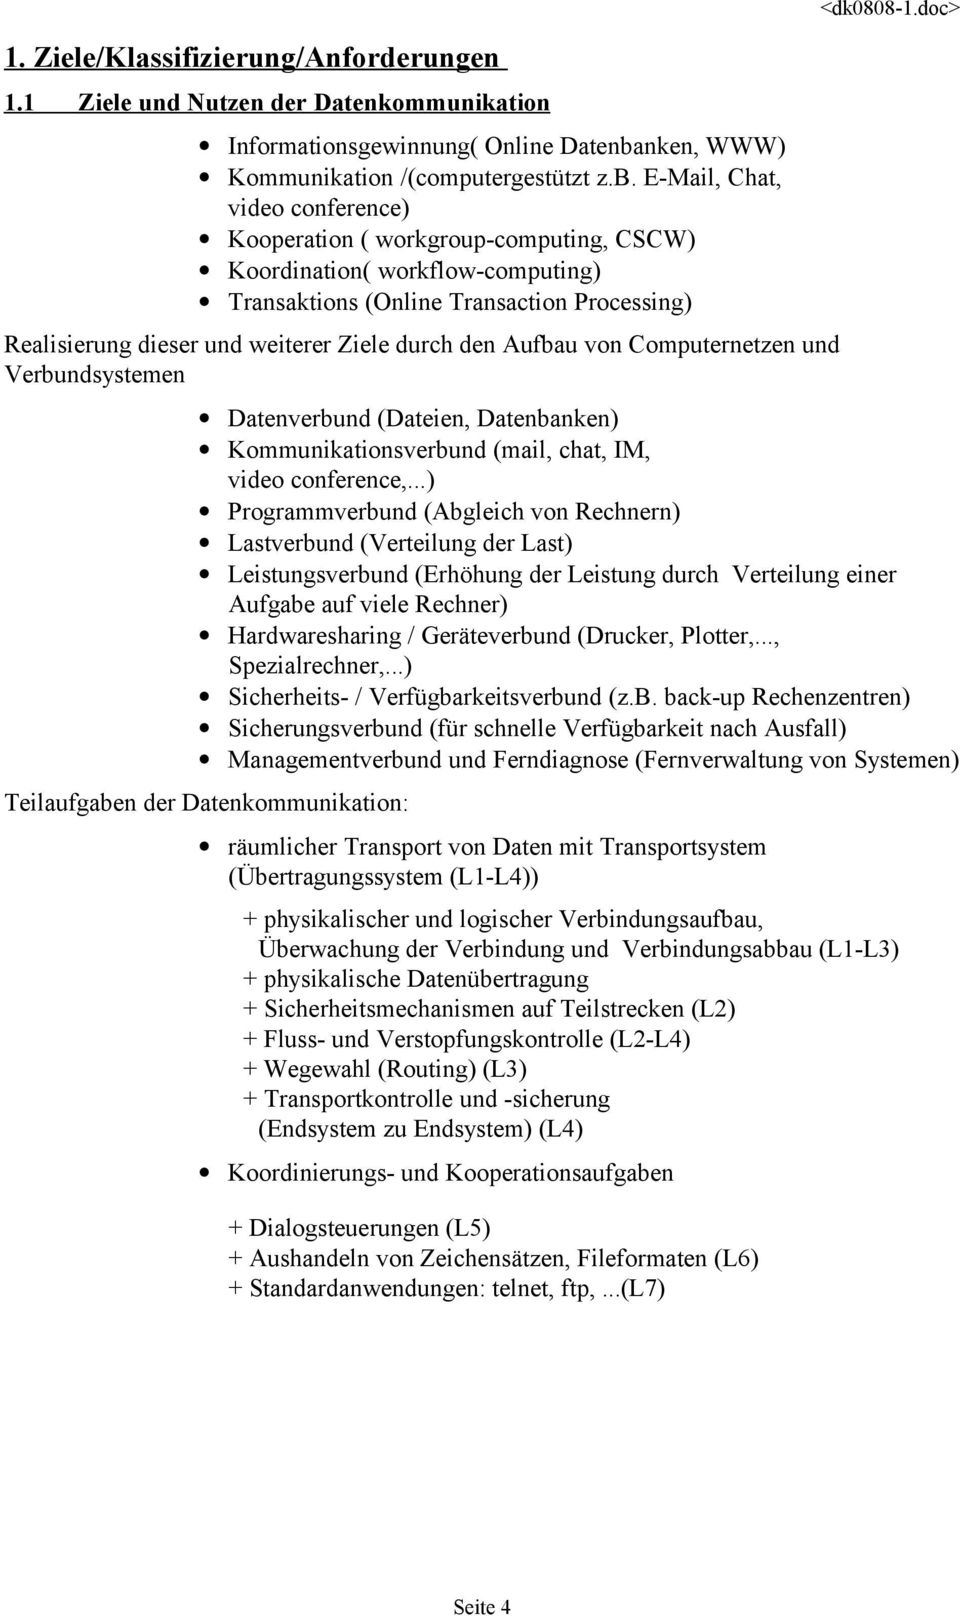 E-Mail, Chat, video conference) Kooperation ( workgroup-computing, CSCW) Koordination( workflow-computing) Transaktions (Online Transaction Processing) Realisierung dieser und weiterer Ziele durch